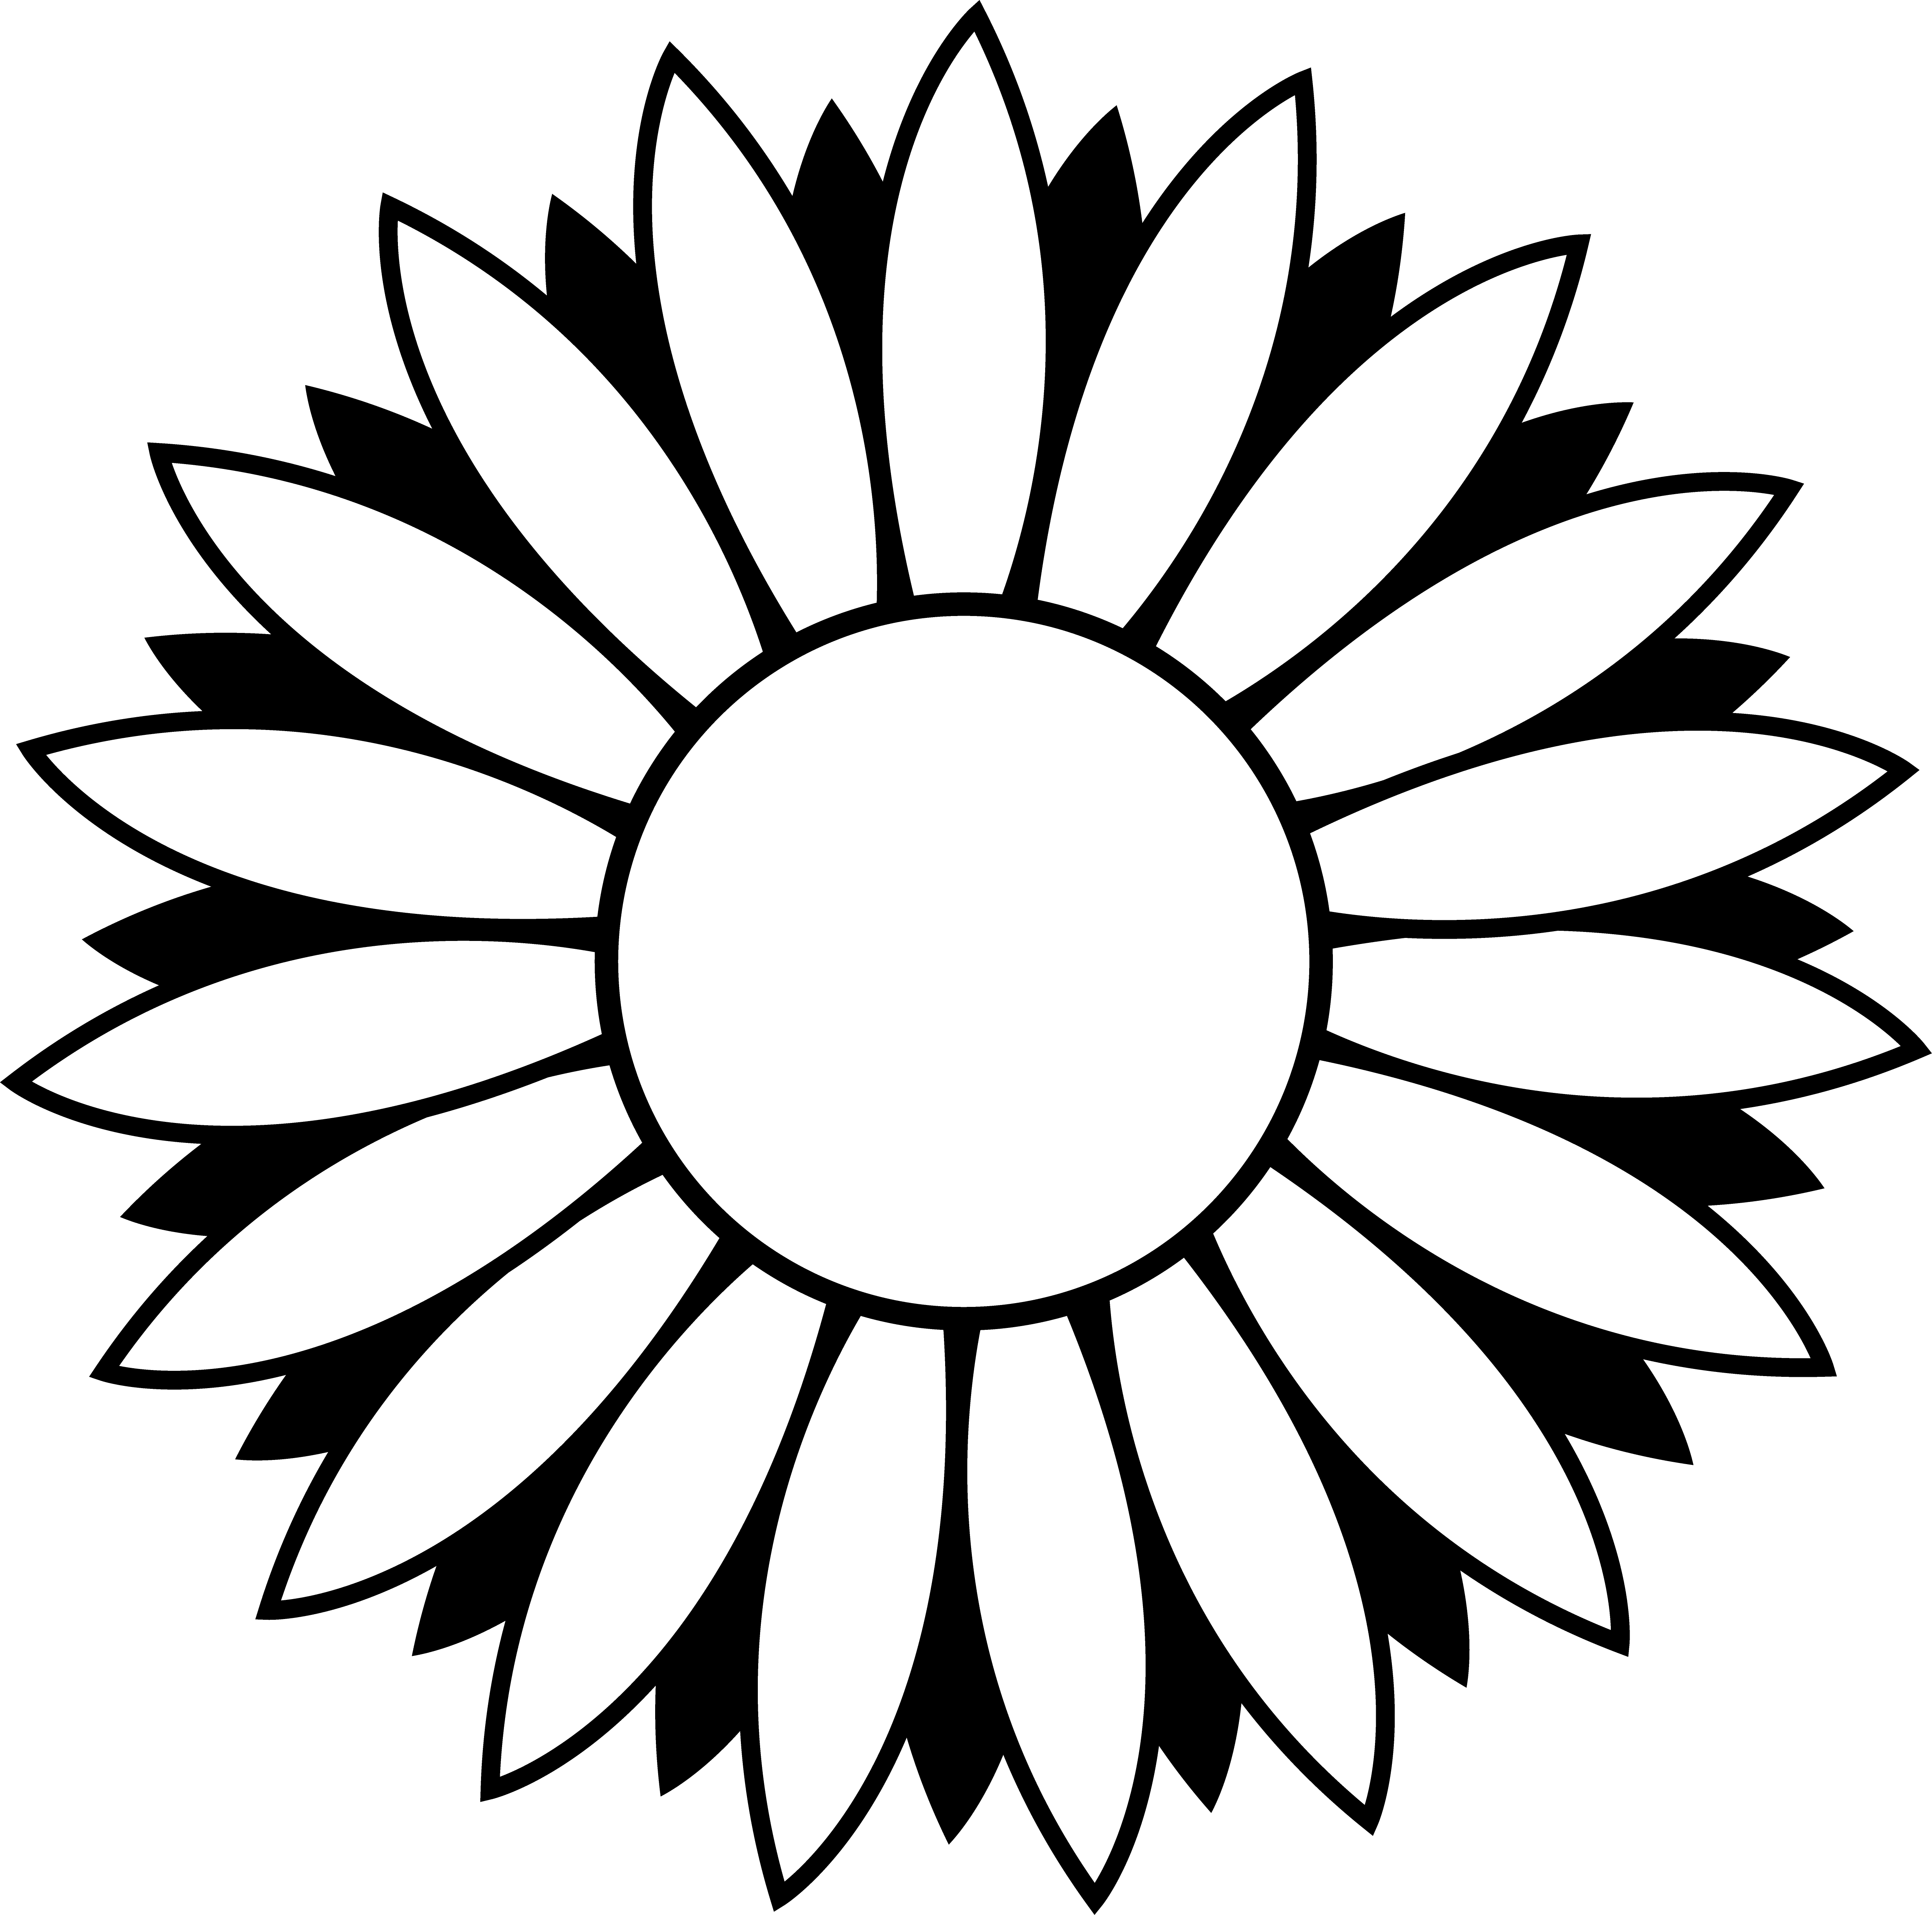 Black and white line drawings clipart picture black and white library Black and White Colorable Sunflower - Free Clip Art picture black and white library